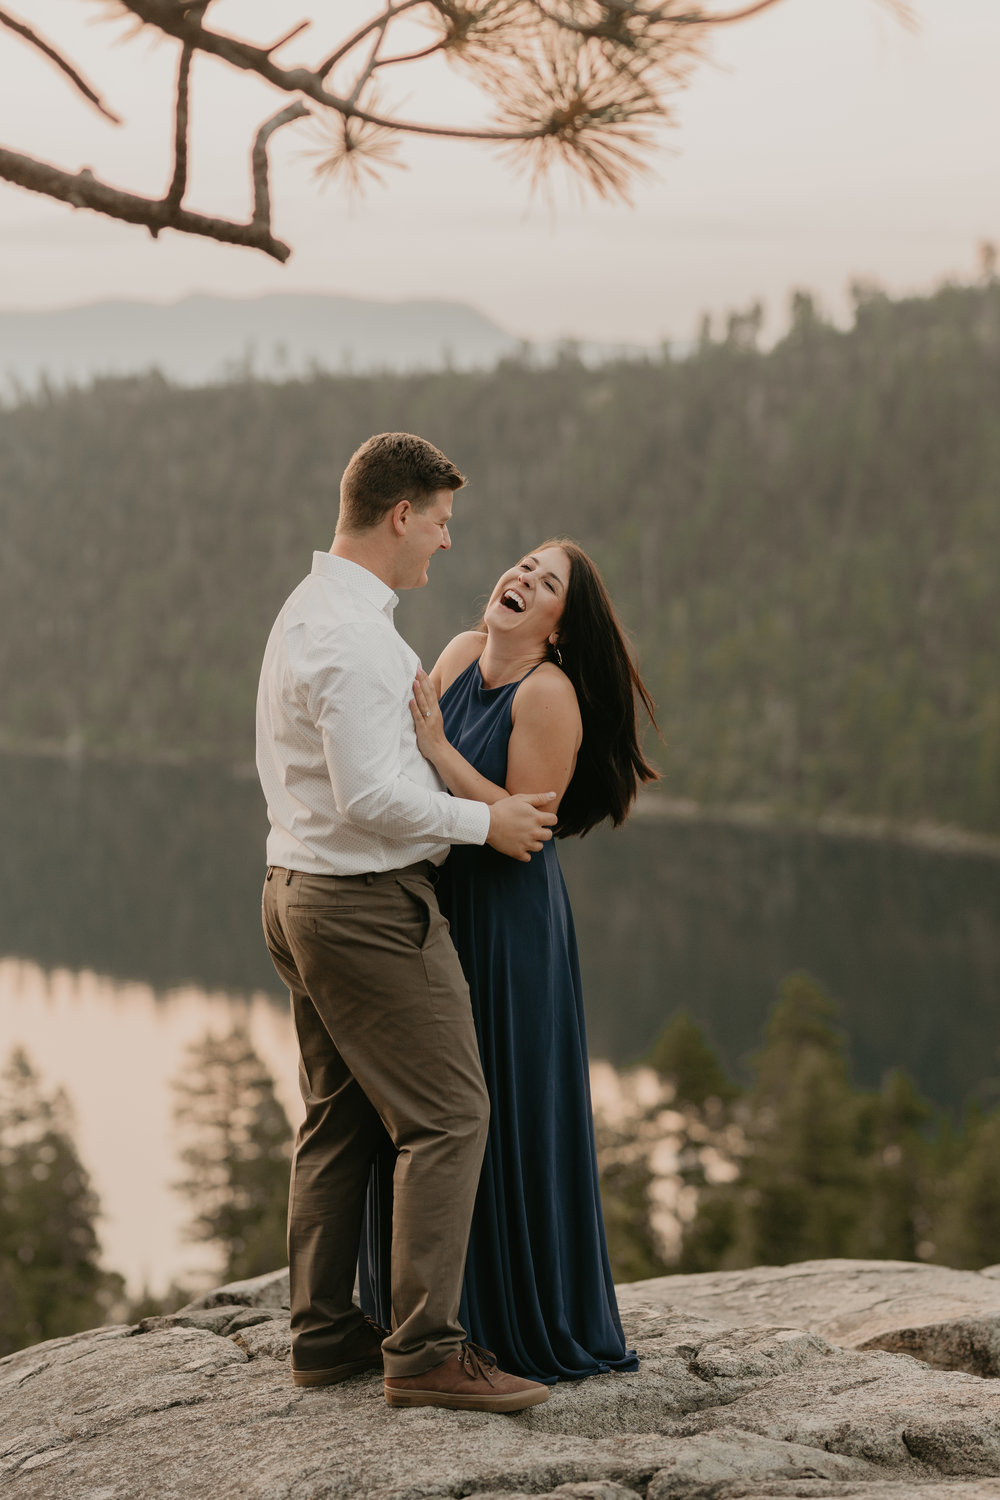 nicole-daacke-photography-lake-tahoe-sunrise-summer-adventure-engagement-photos-nevada-wedding-elopement-photographer-golden-emerald-bay-light-pine-trees-summer-vibe-fun-carefree-authentic-love-6.jpg